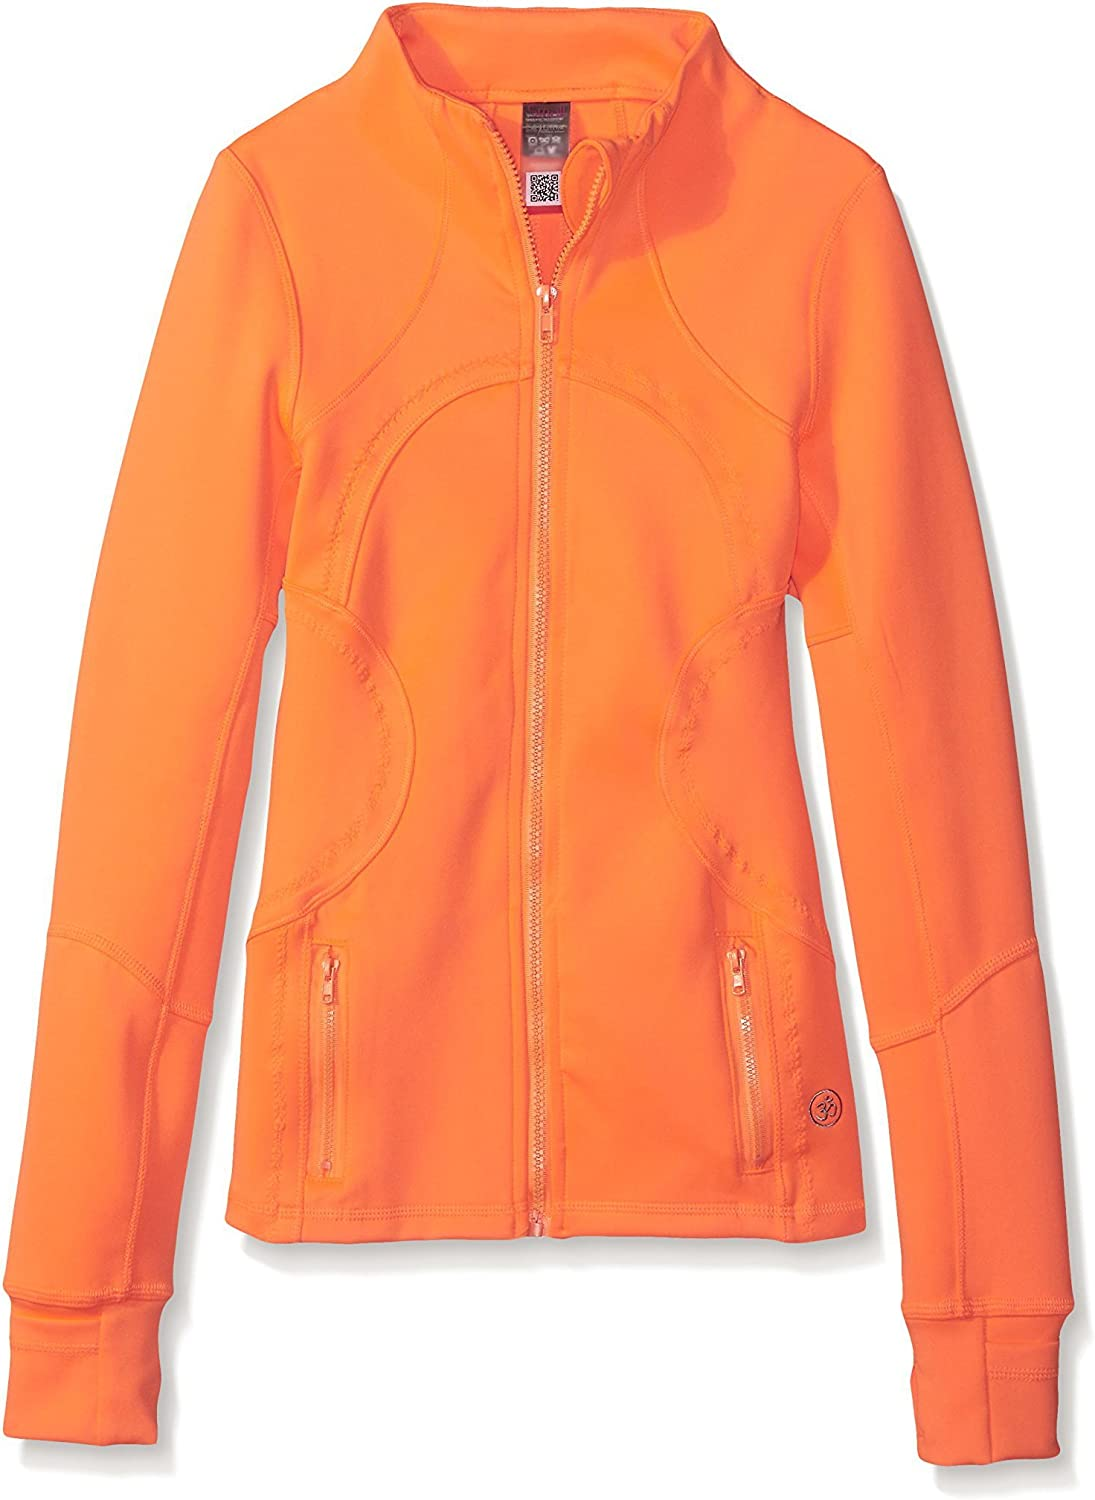 Electric Yoga Women's Fierce Jacket